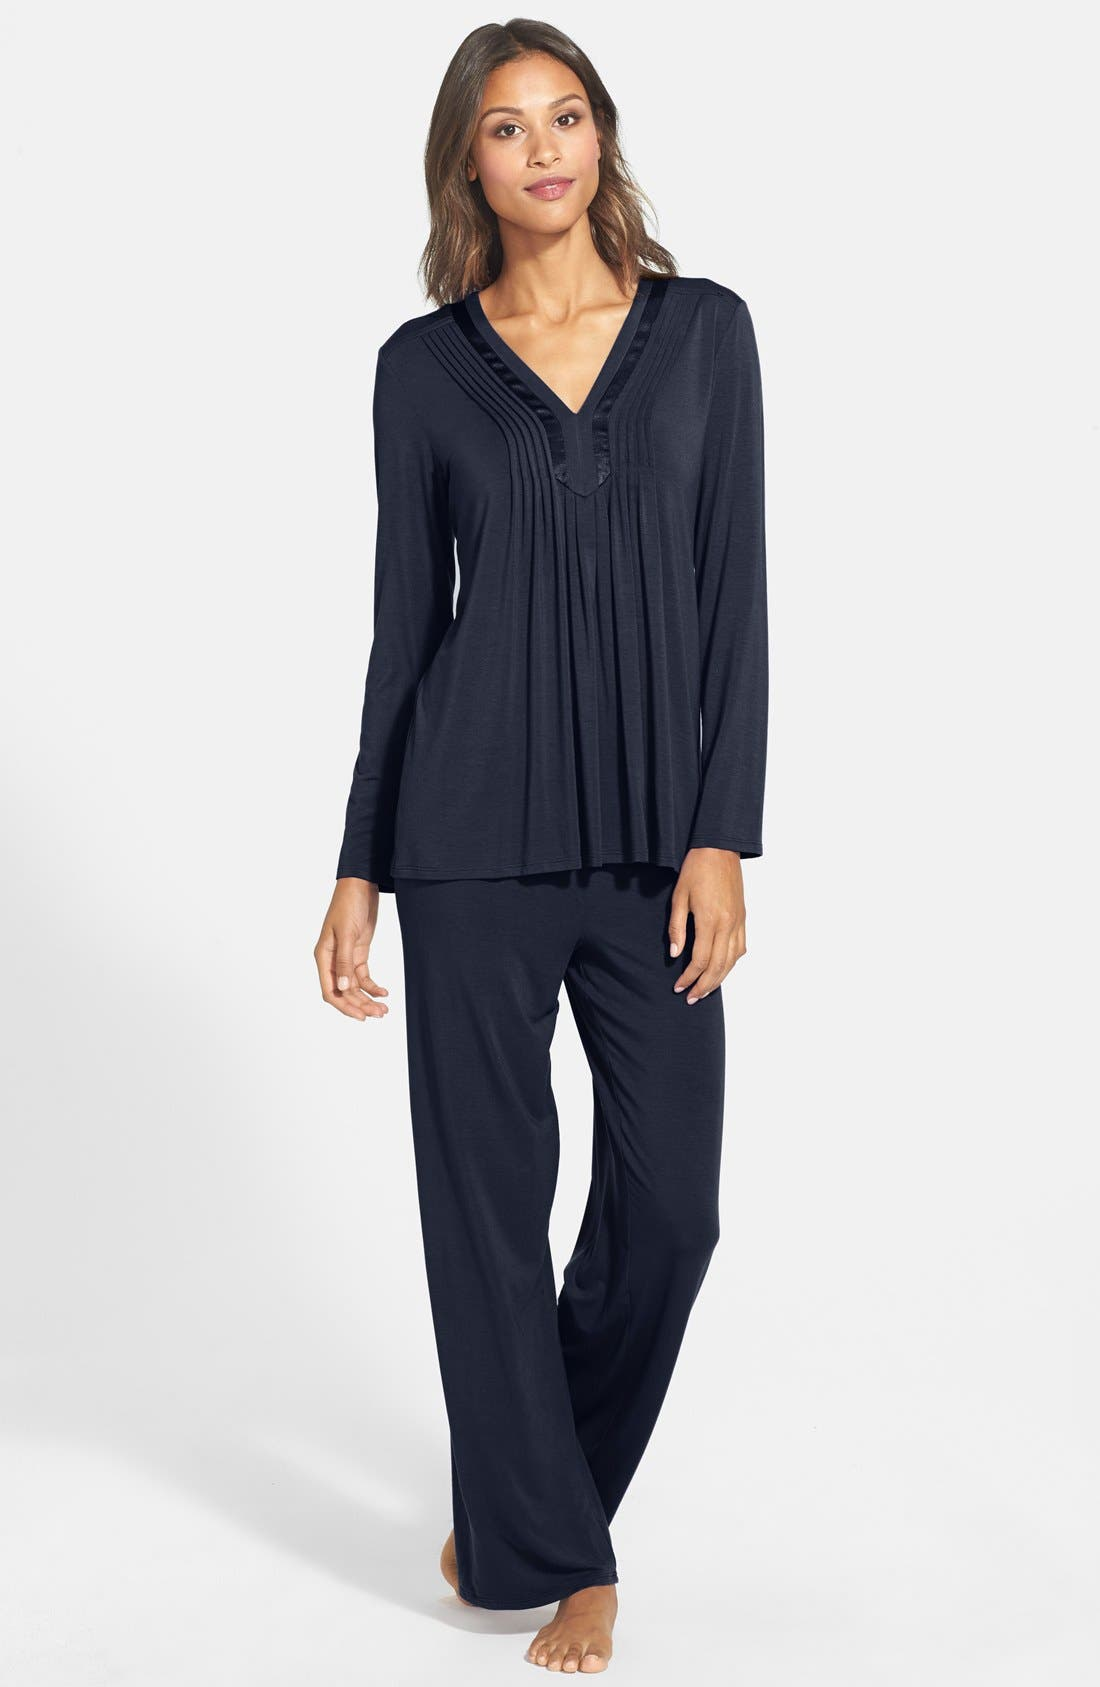 Alternate Image 1 Selected - Midnight by Carole Hochman 'Restful Mornings' Pajamas